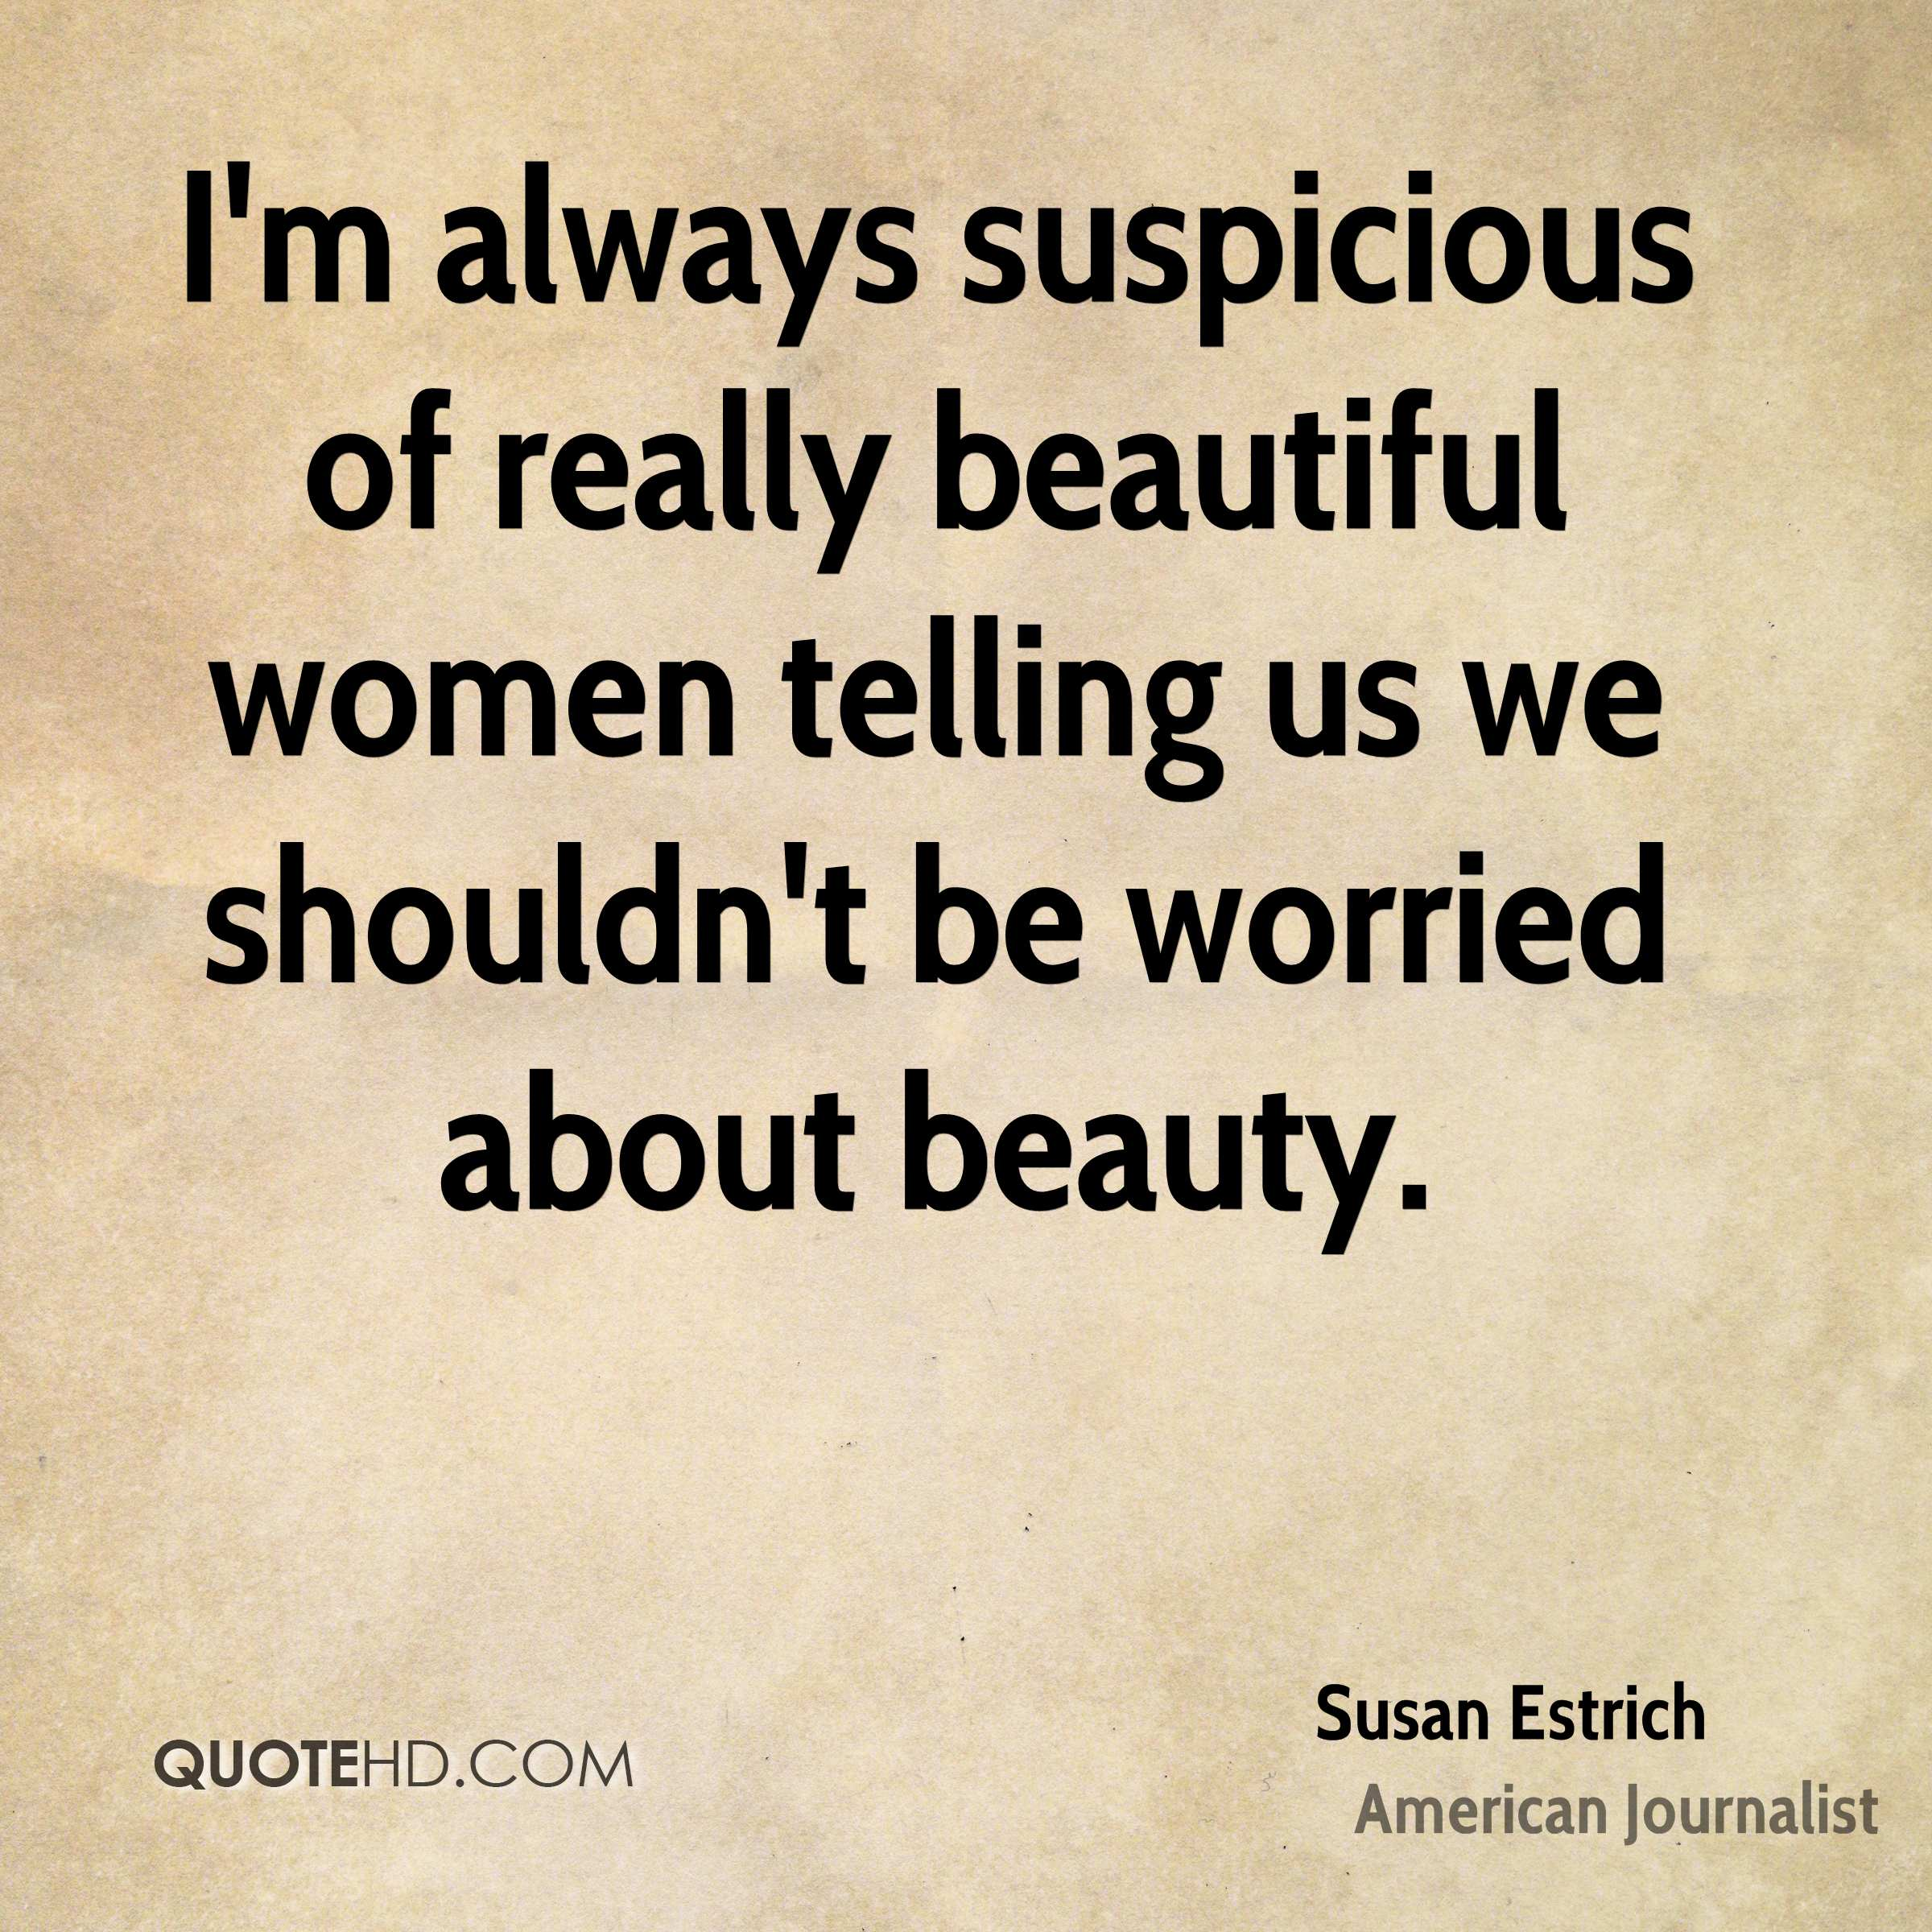 I'm always suspicious of really beautiful women telling us we shouldn't be worried about beauty.